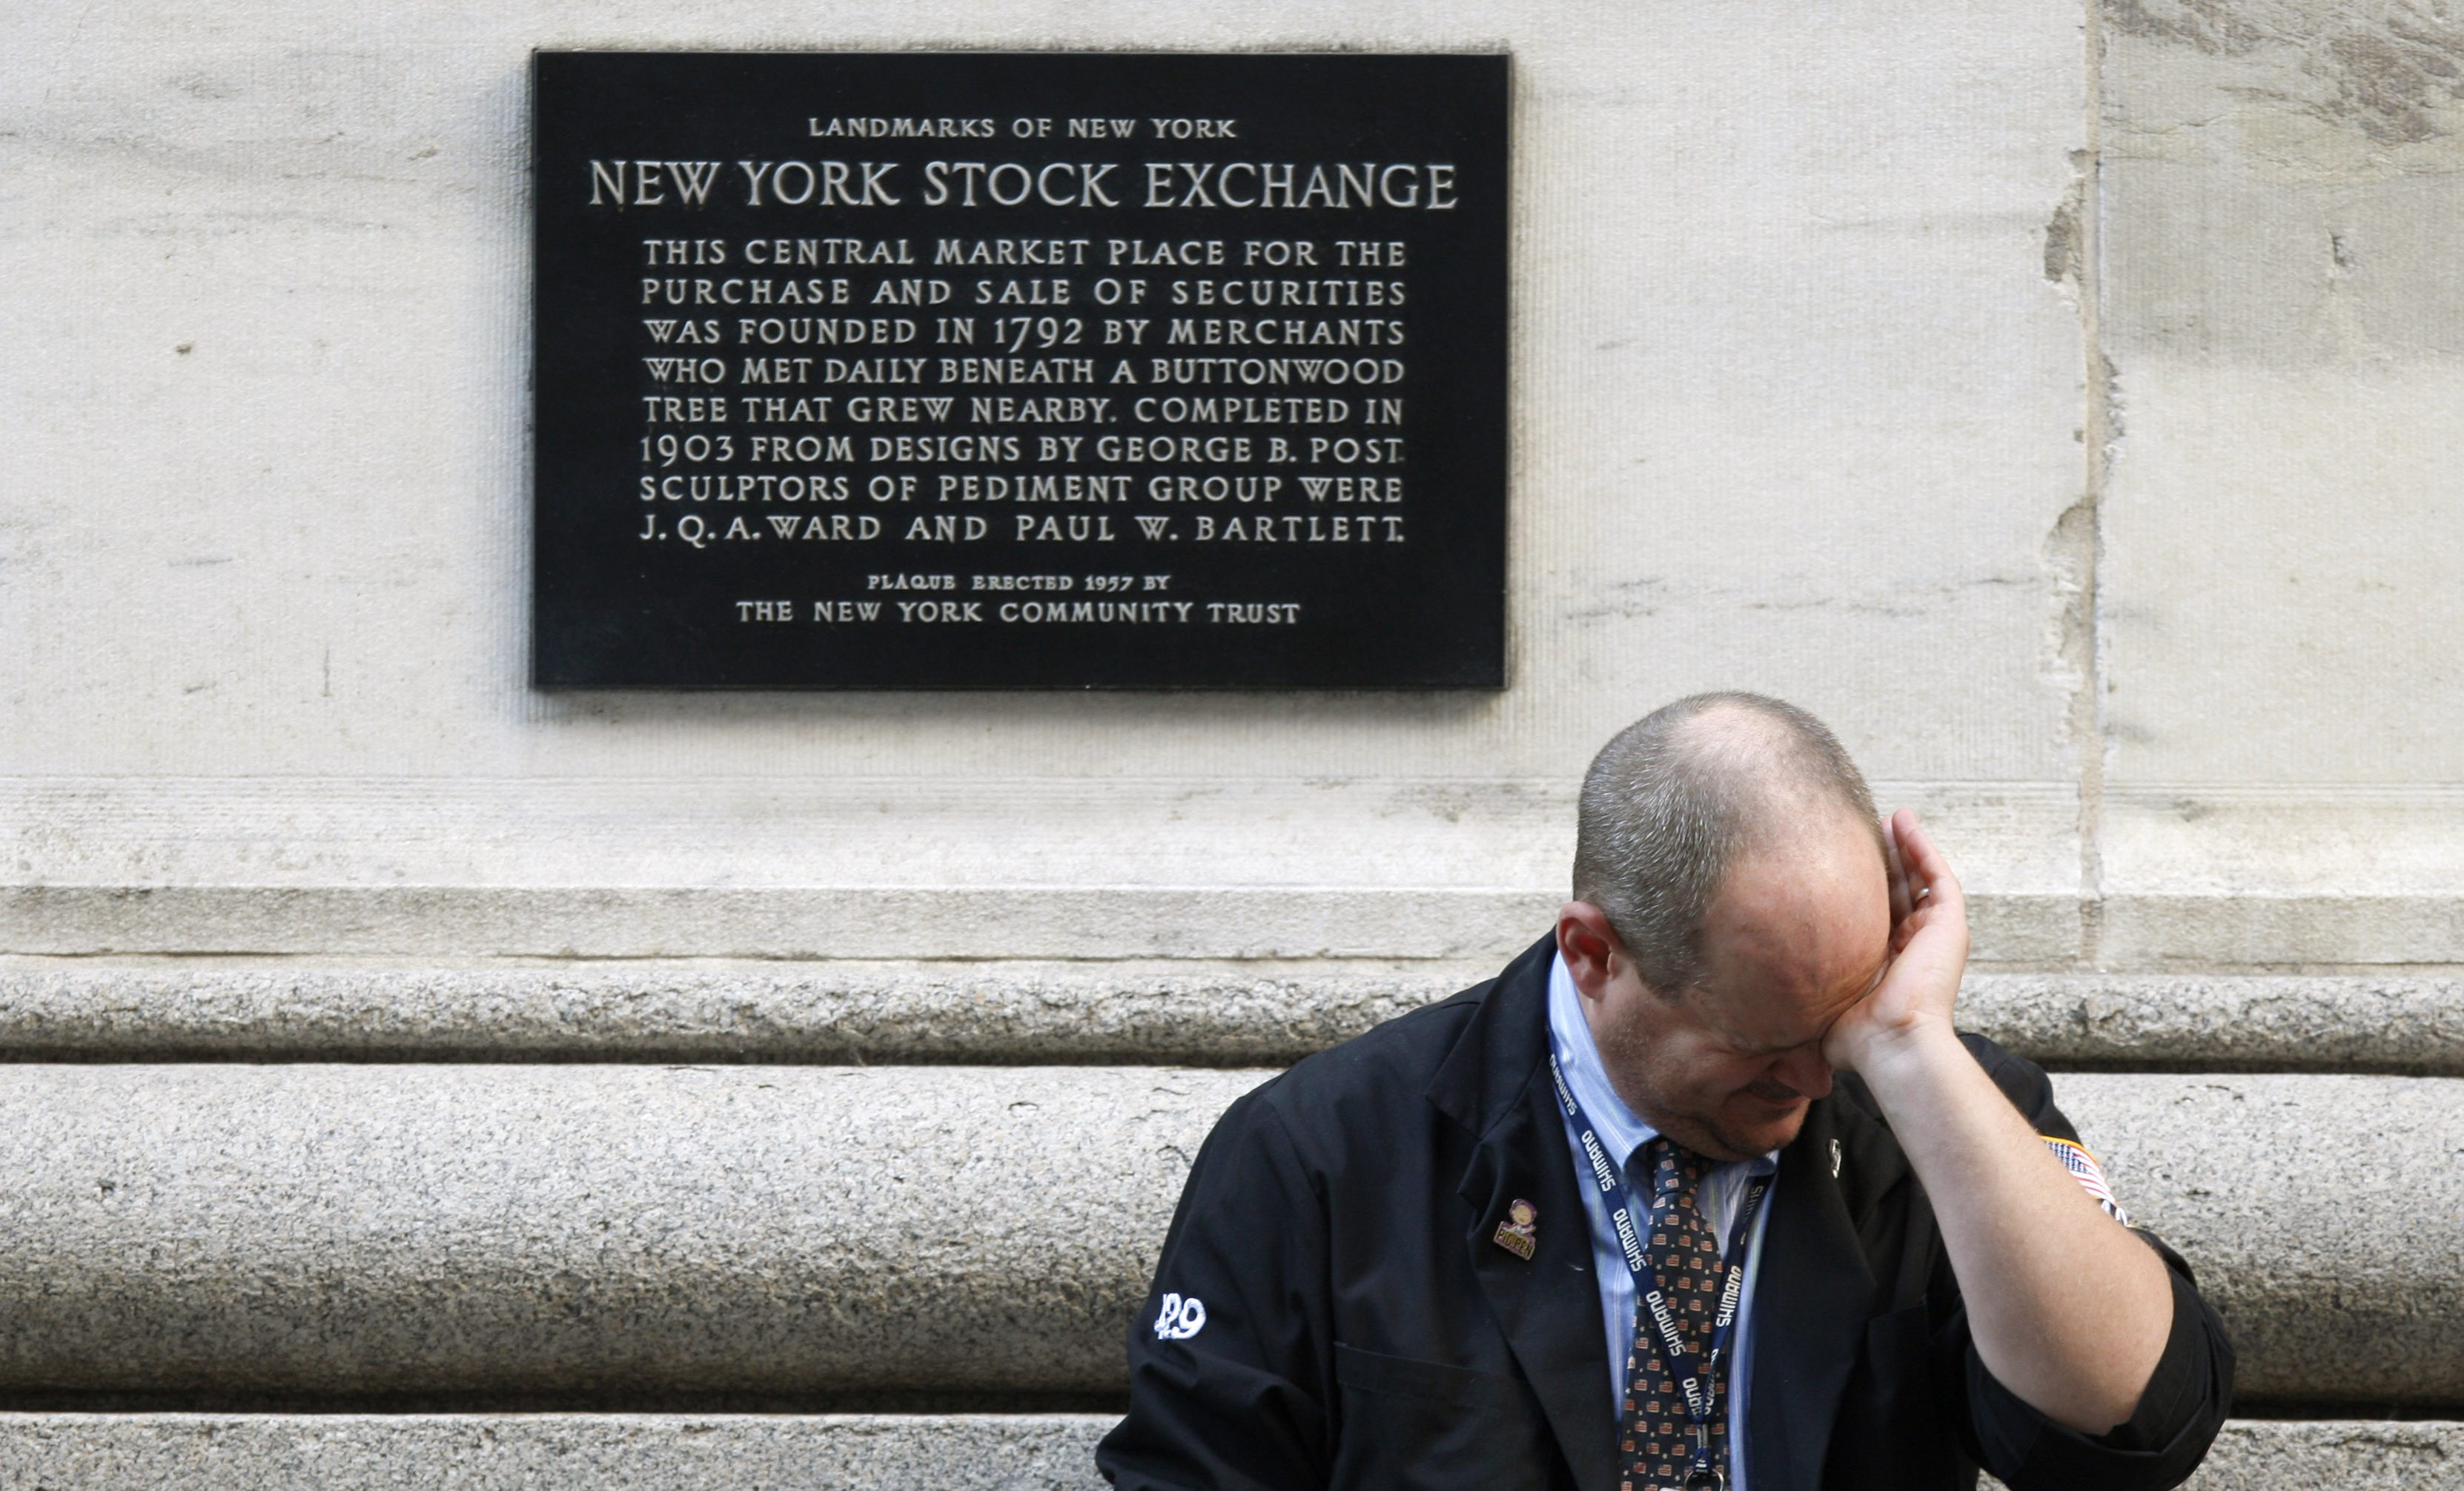 A weary trader rubs his eyes as he pauses outside the New York Stock Exchange following the end of the trading session in New York October 9, 2008. The Dow Jones Industrial Average dropped 678.91 points on the day to finish at 8579.19 closing below 9,000 for the first time since 2003.